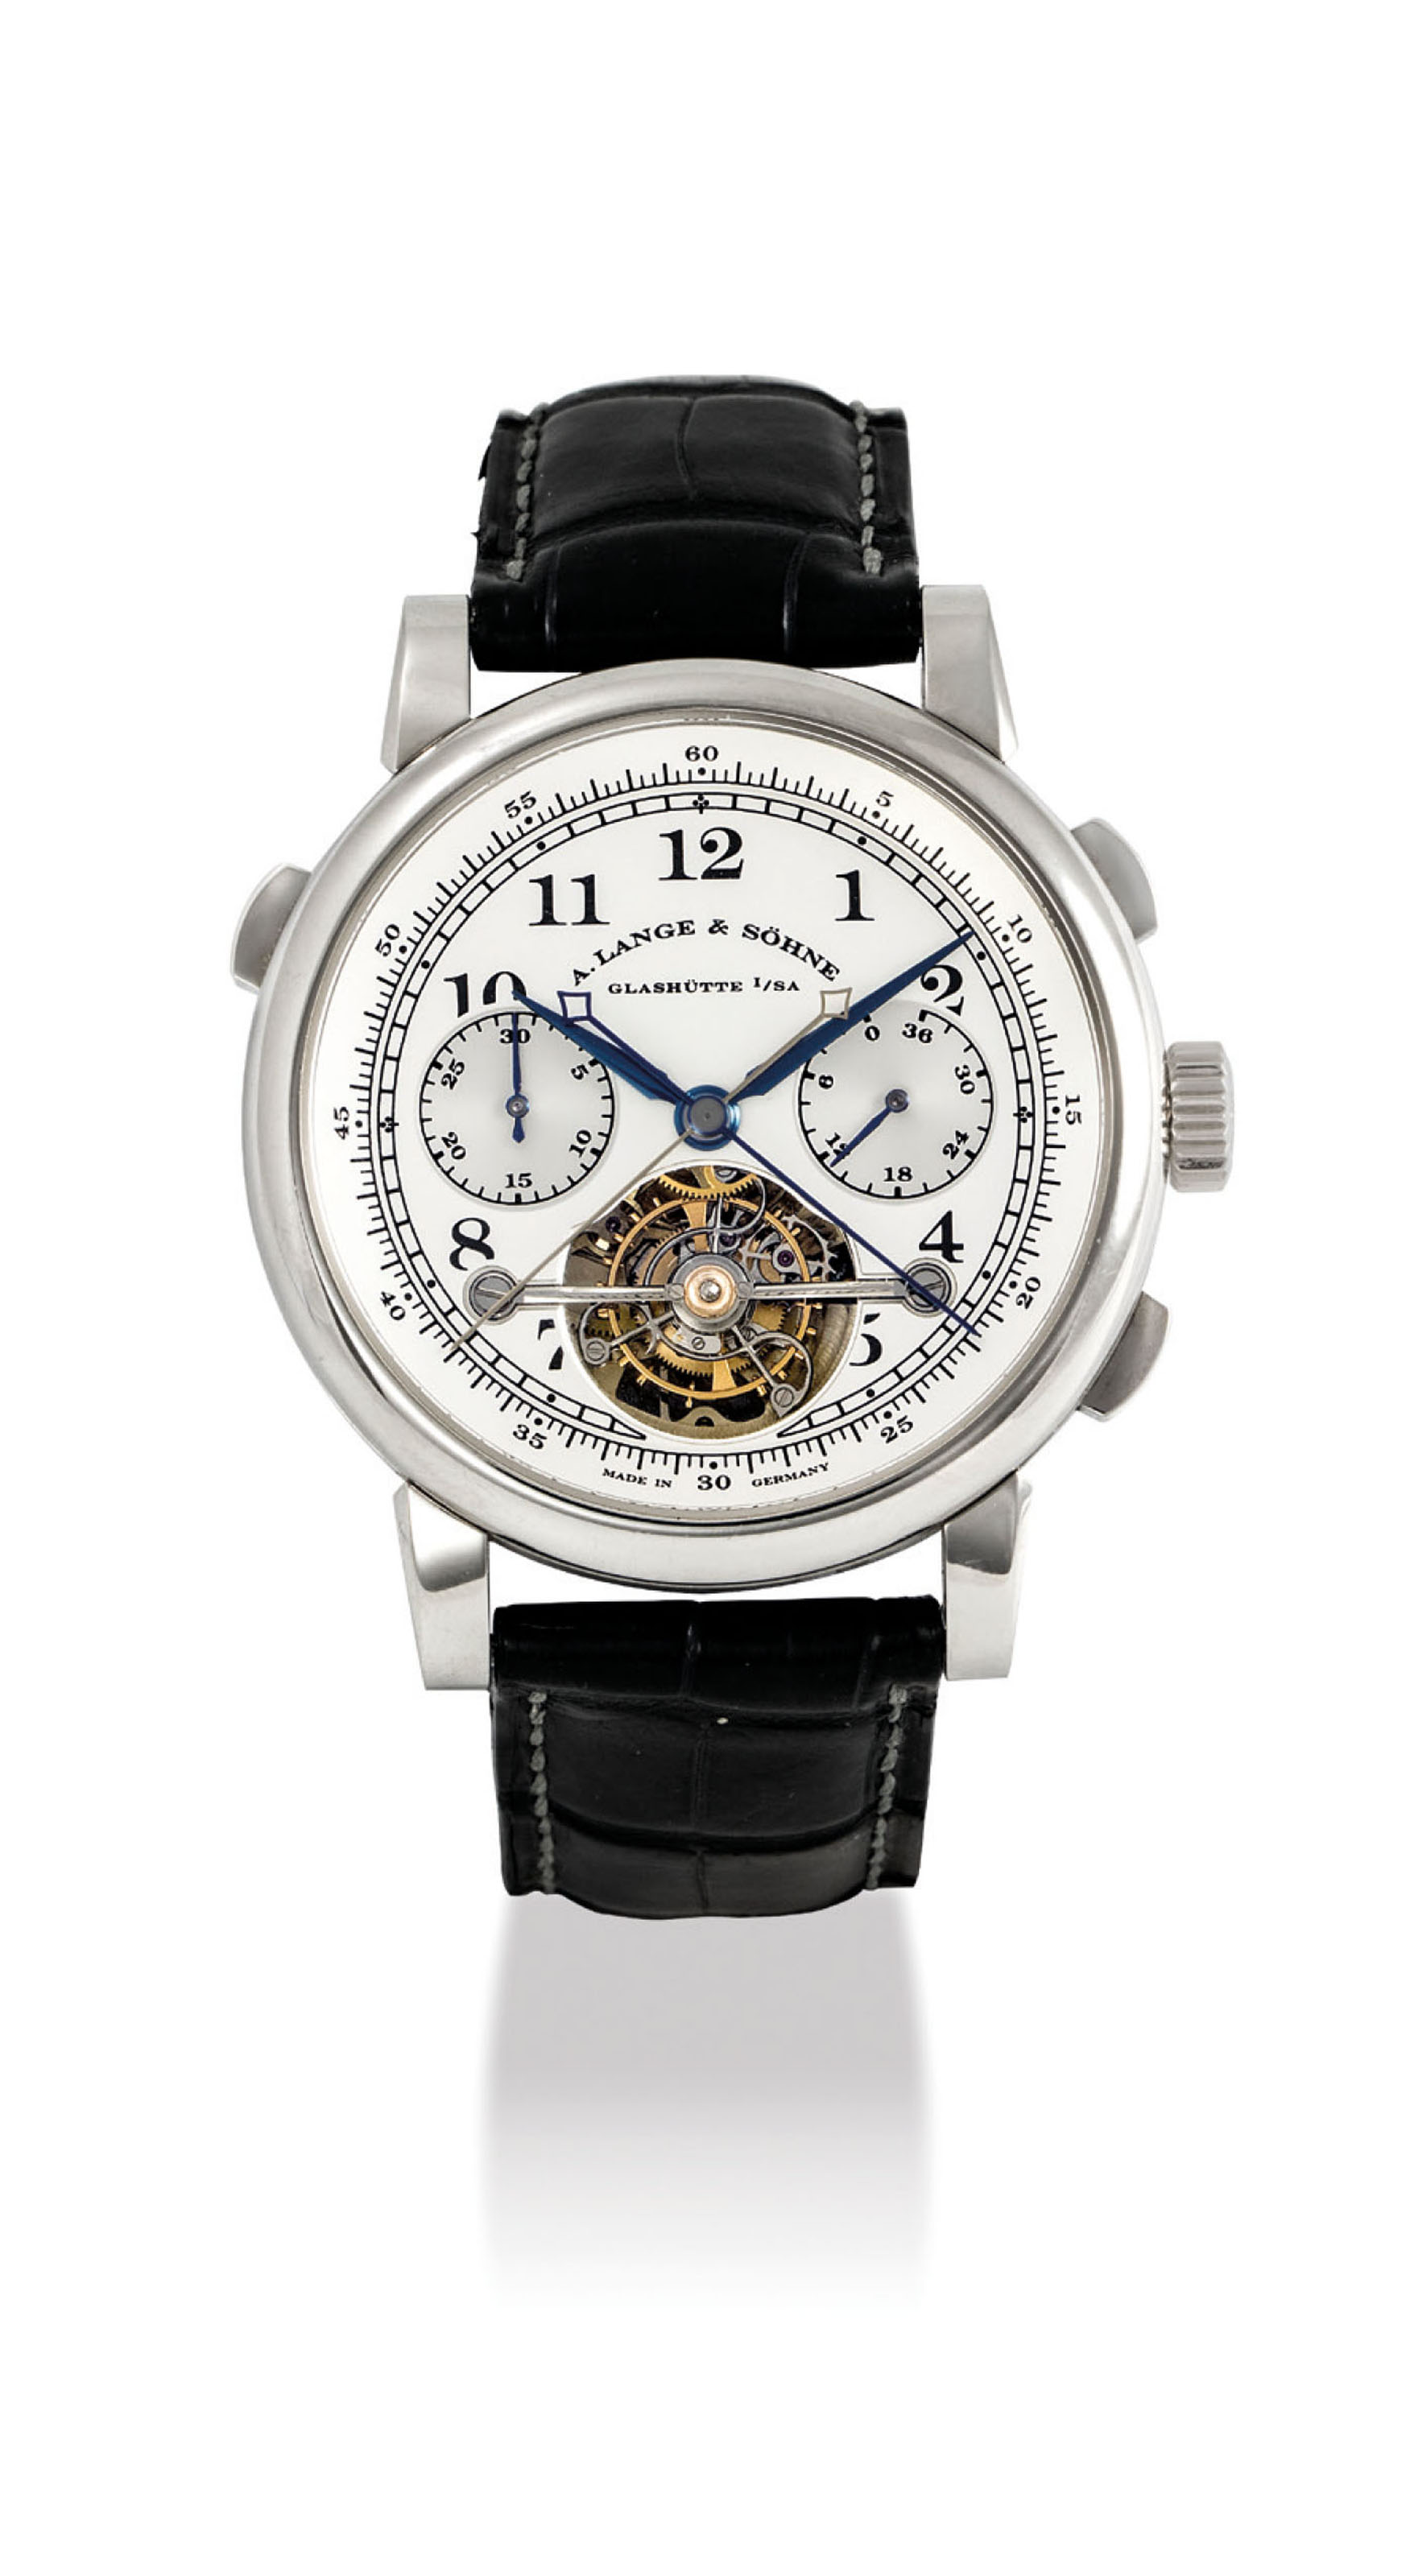 A. LANGE & SÖHNE. AN EXTREMELY FINE AND VERY RARE PLATINUM LIMITED EDITION SPLIT SECONDS CHRONOGRAPH TOURBILLON WRISTWATCH WITH POWER RESERVE INDICATION AND CHAIN FUSÉE